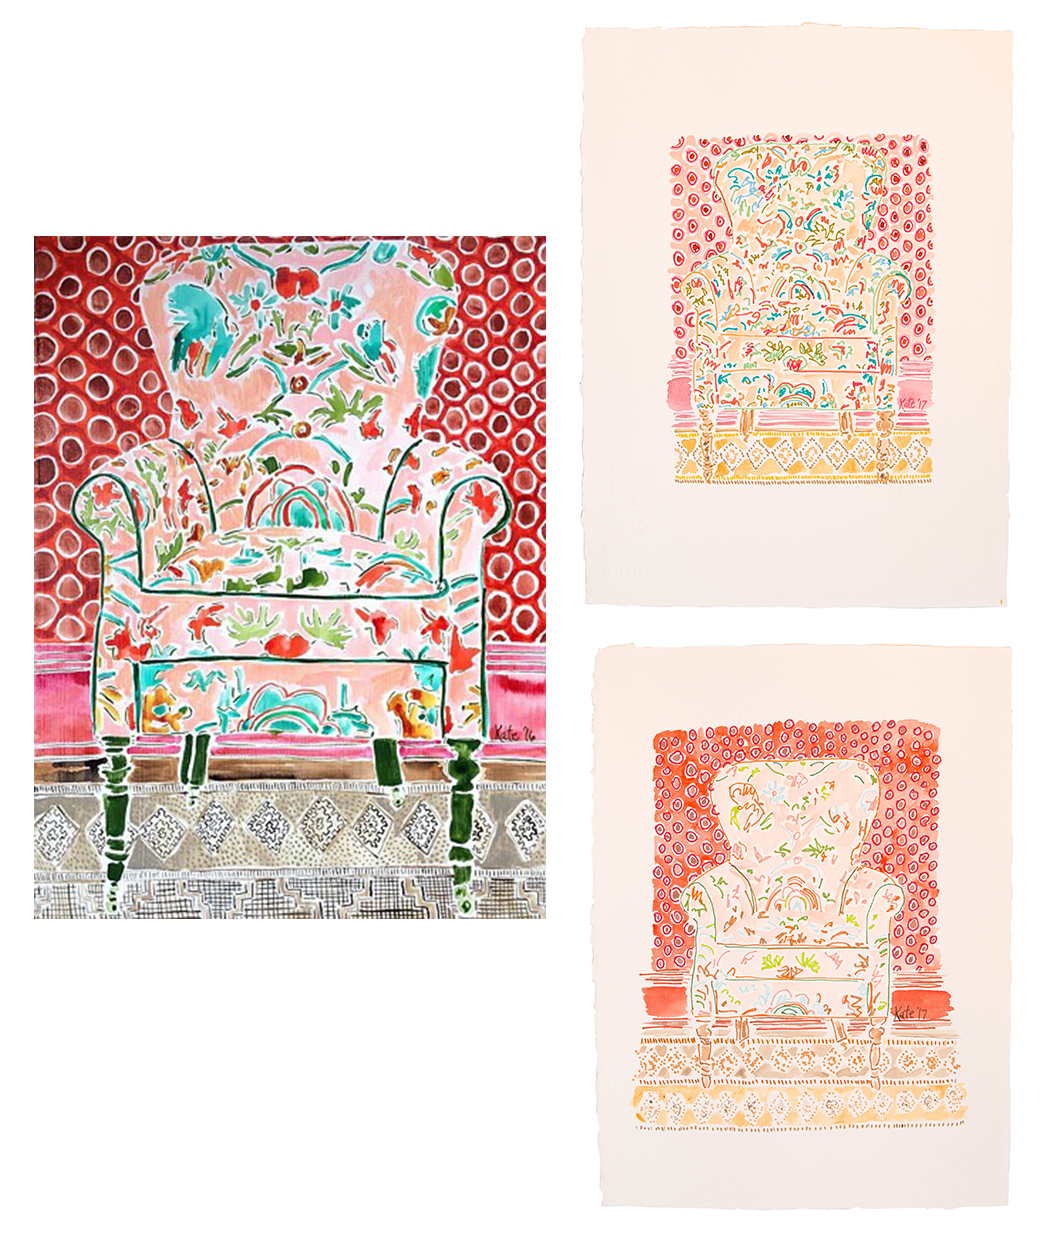 On the left is the painting from 2016 Chair with Red Wallpaper. On the right is the reimagined subject created recently (fall 2017) in marker and watercolor.